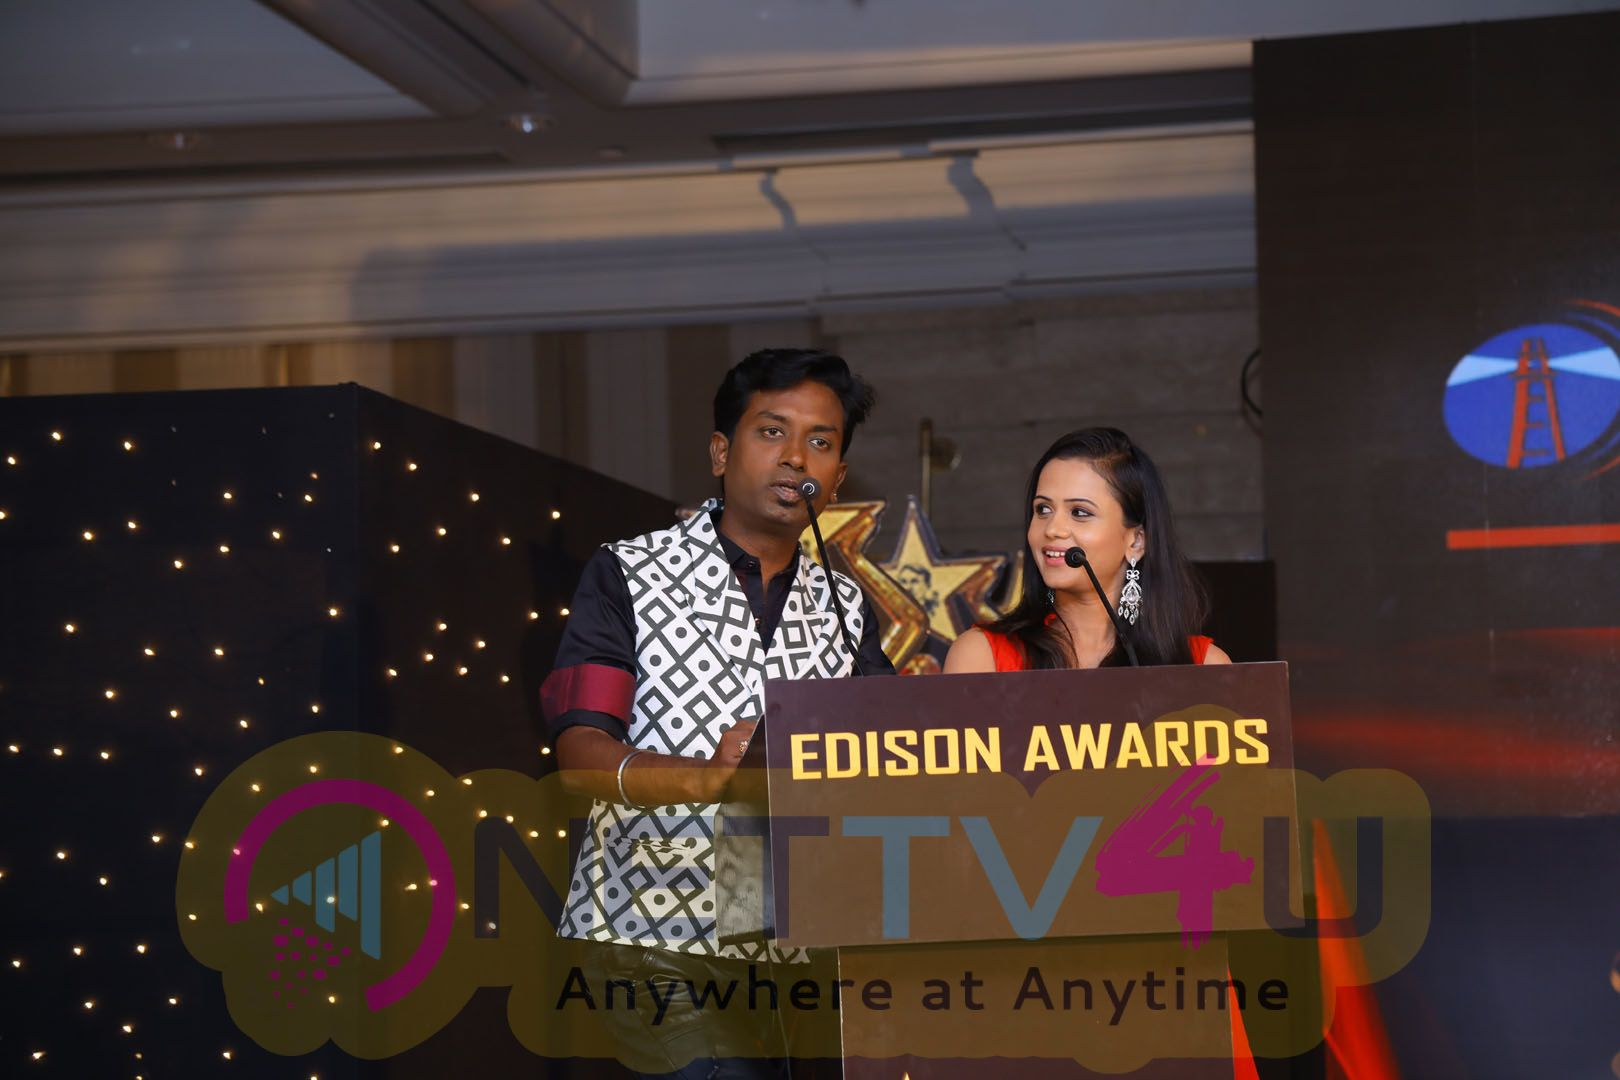 Grandeur Gets Redefined At 11th Annual EDISON AWARDS 2018